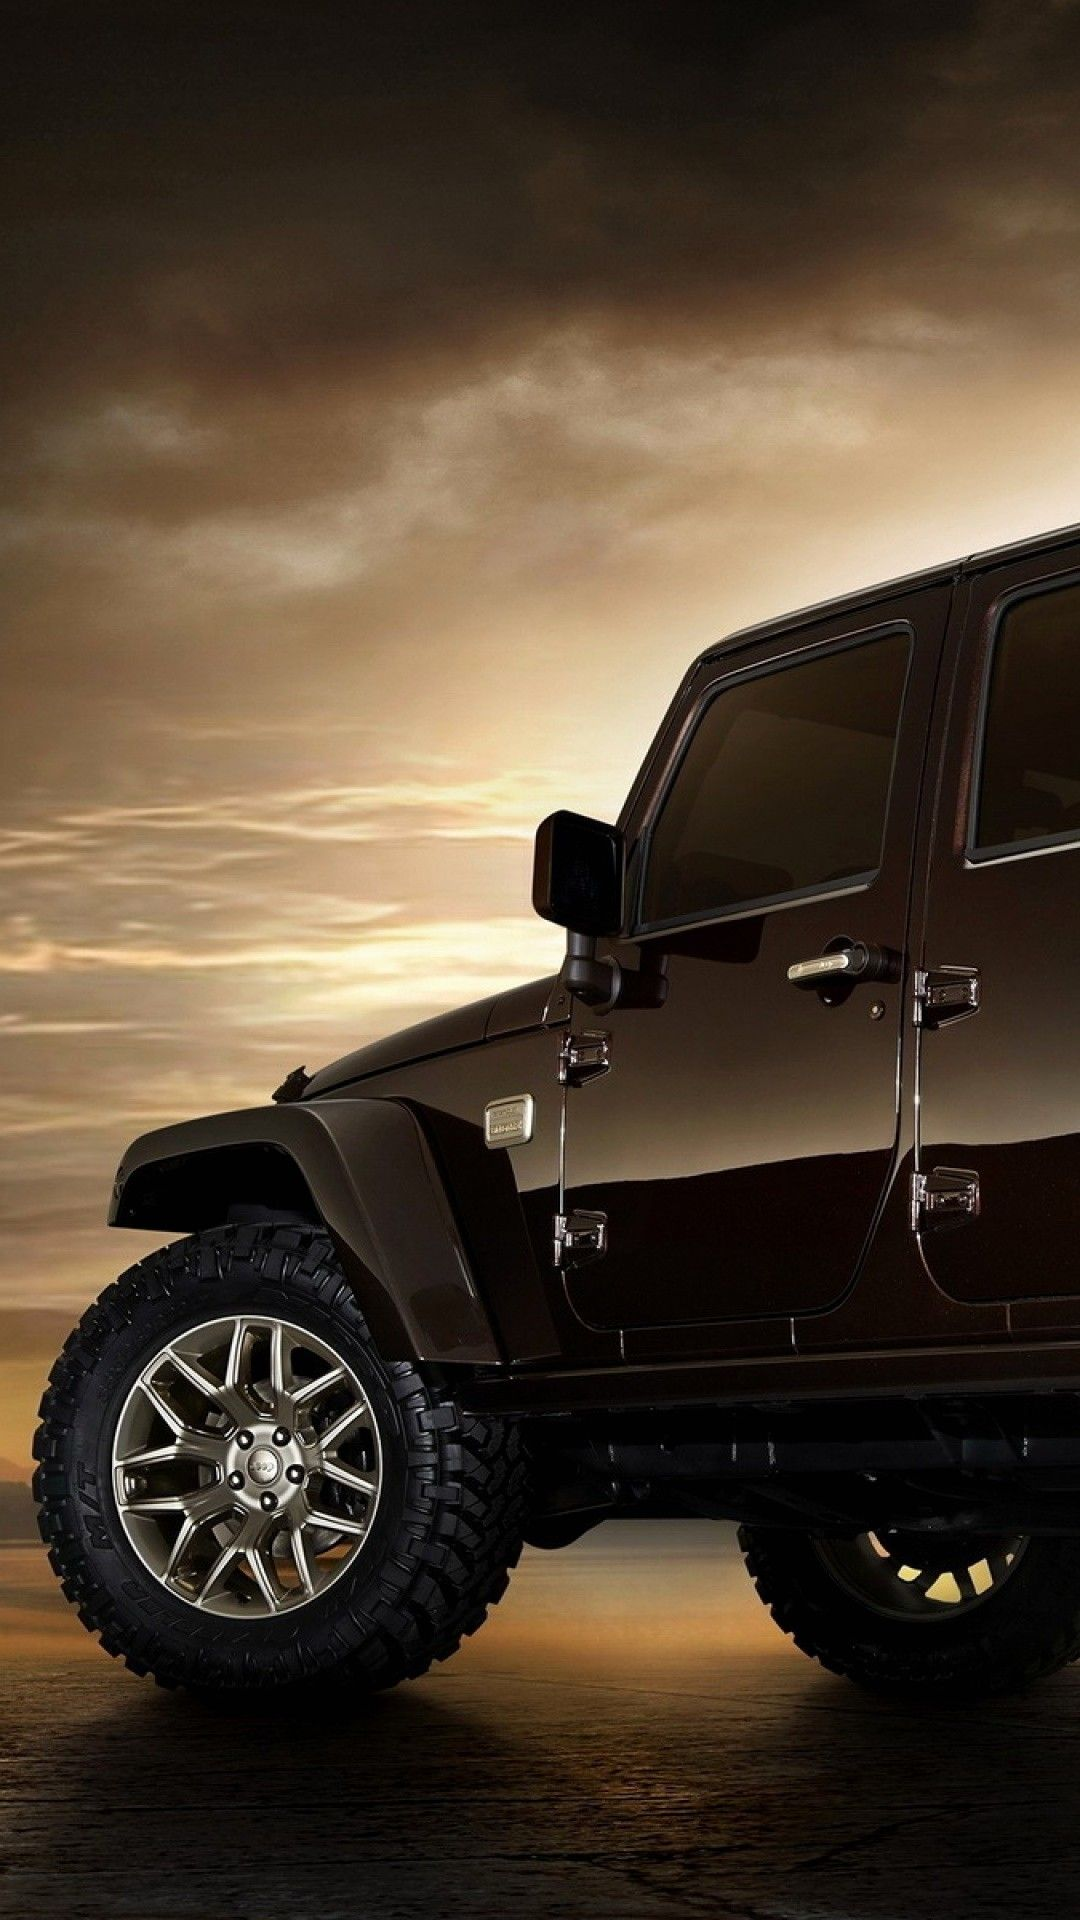 Jeep Iphone Wallpapers Top Free Jeep Iphone Backgrounds Wallpaperaccess